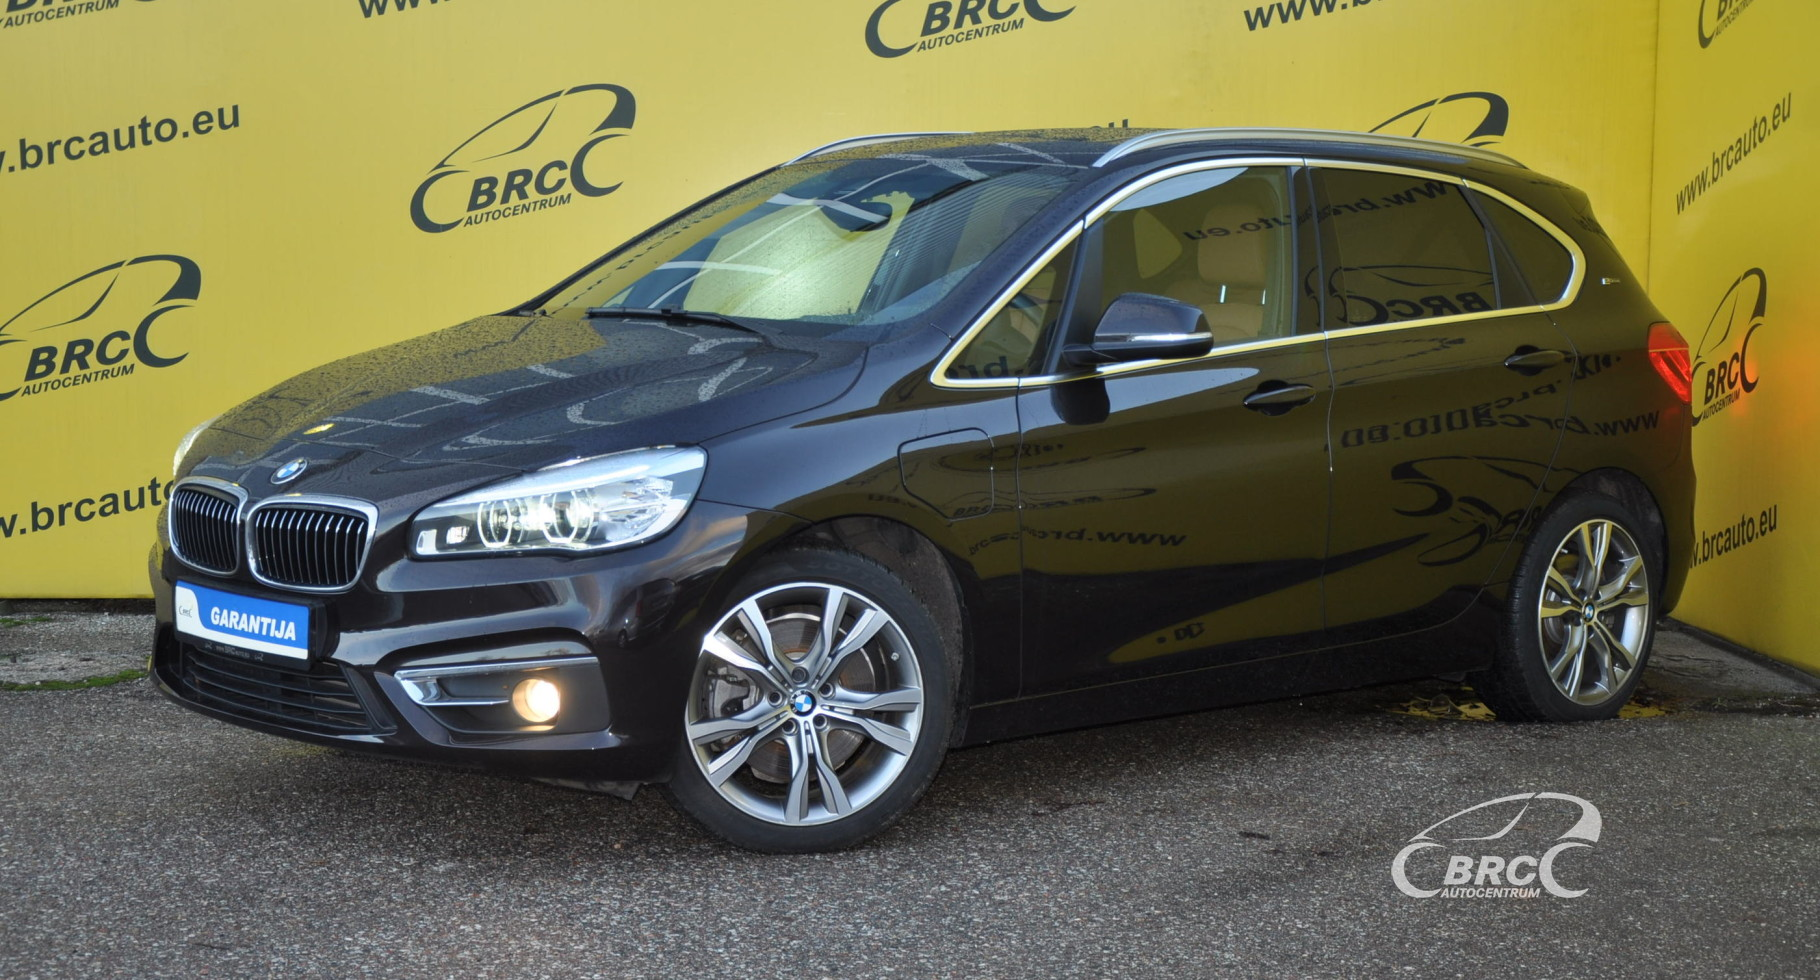 Bmw 225 Xe Active Tourer Iperformance M Sportpaket Id 796963 Brc Autocentrum